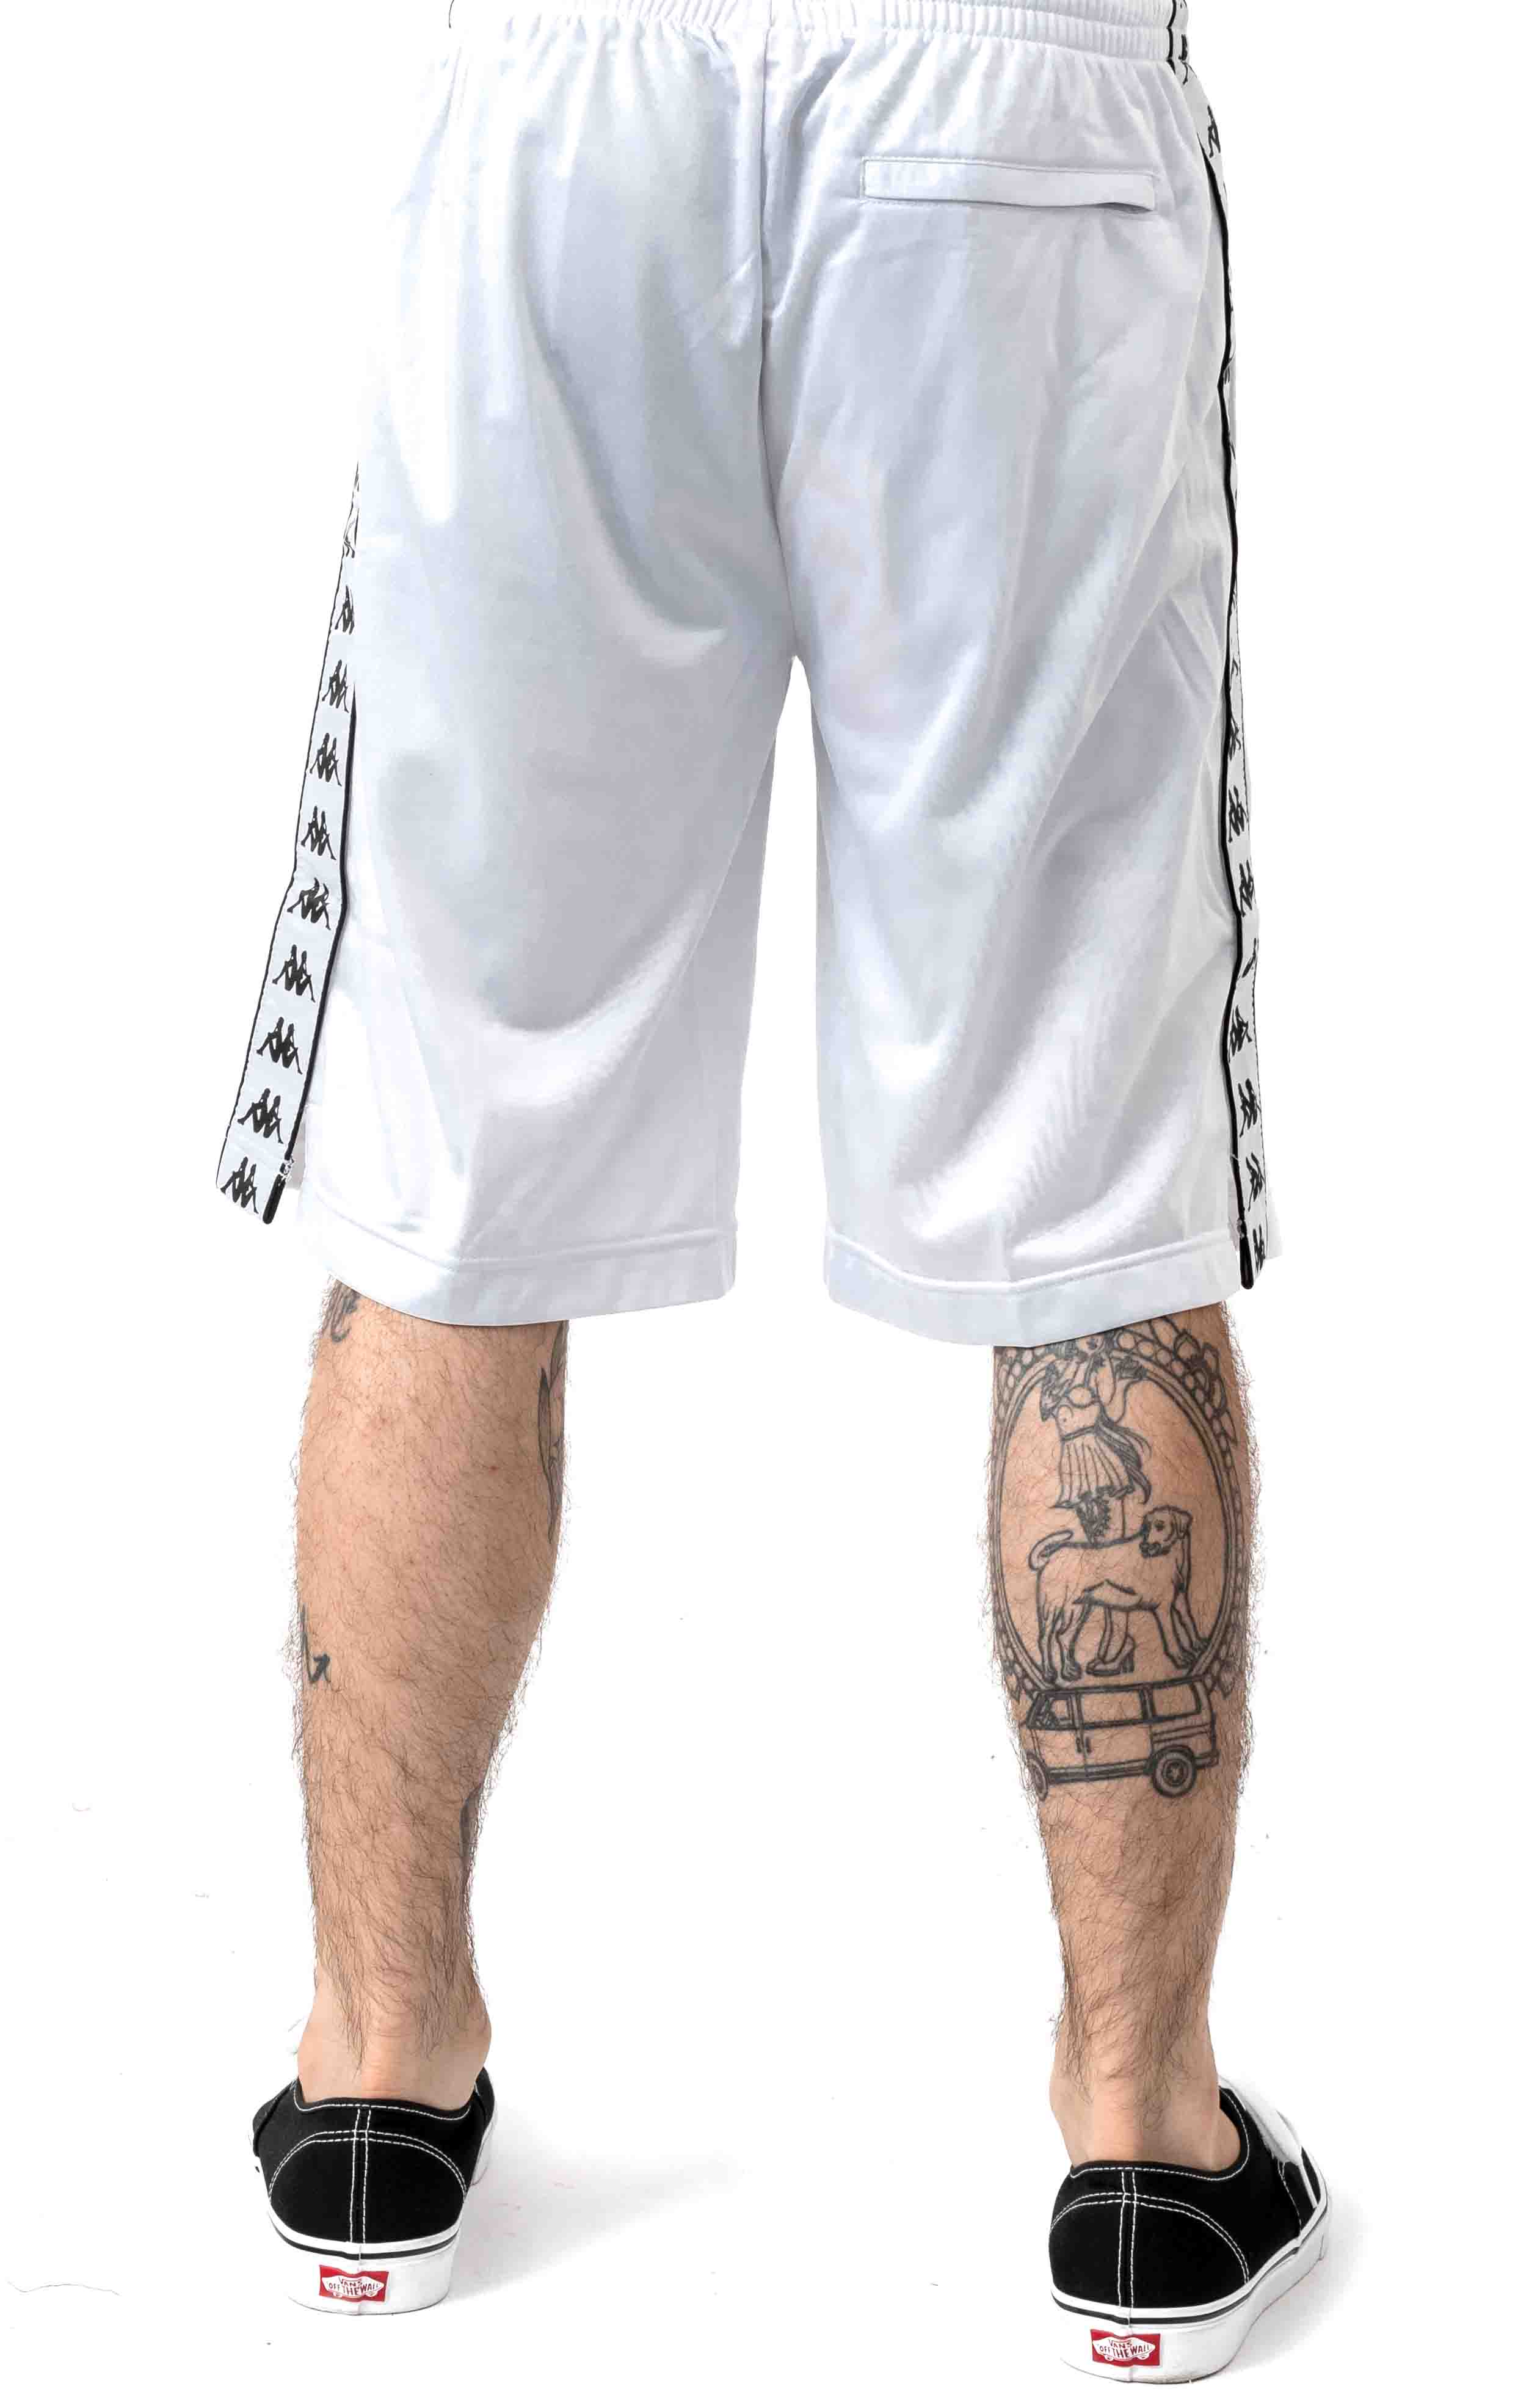 222 Banda Treadwellz Shorts - White/Black 3